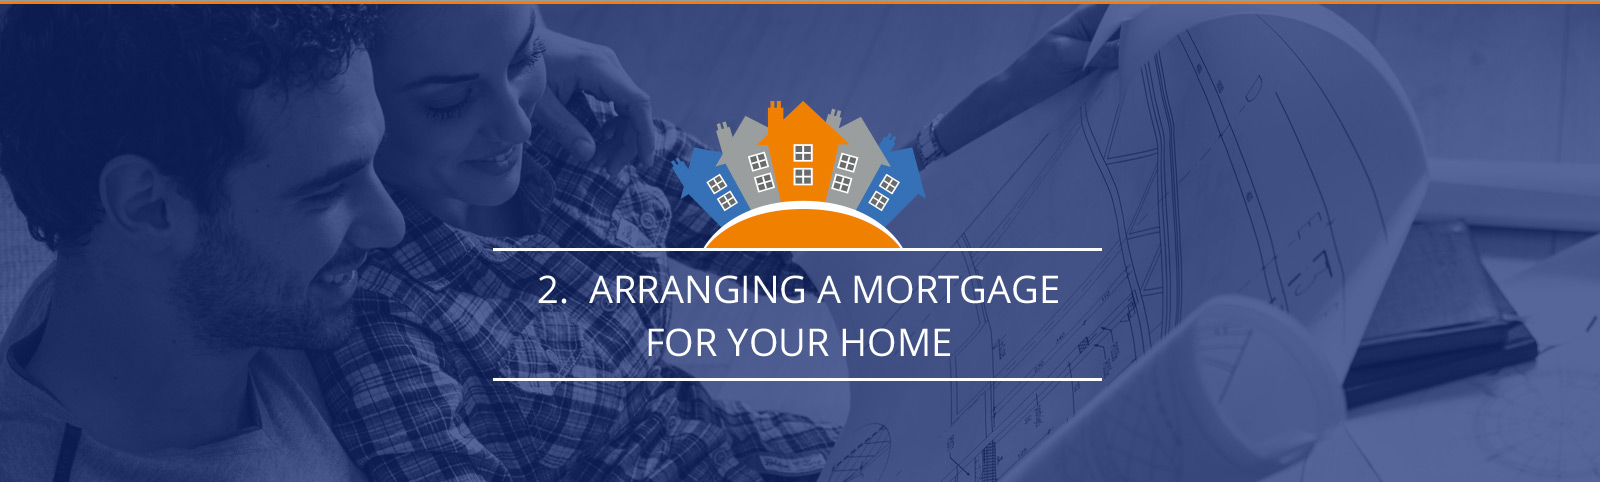 Arranging a mortgage for your home